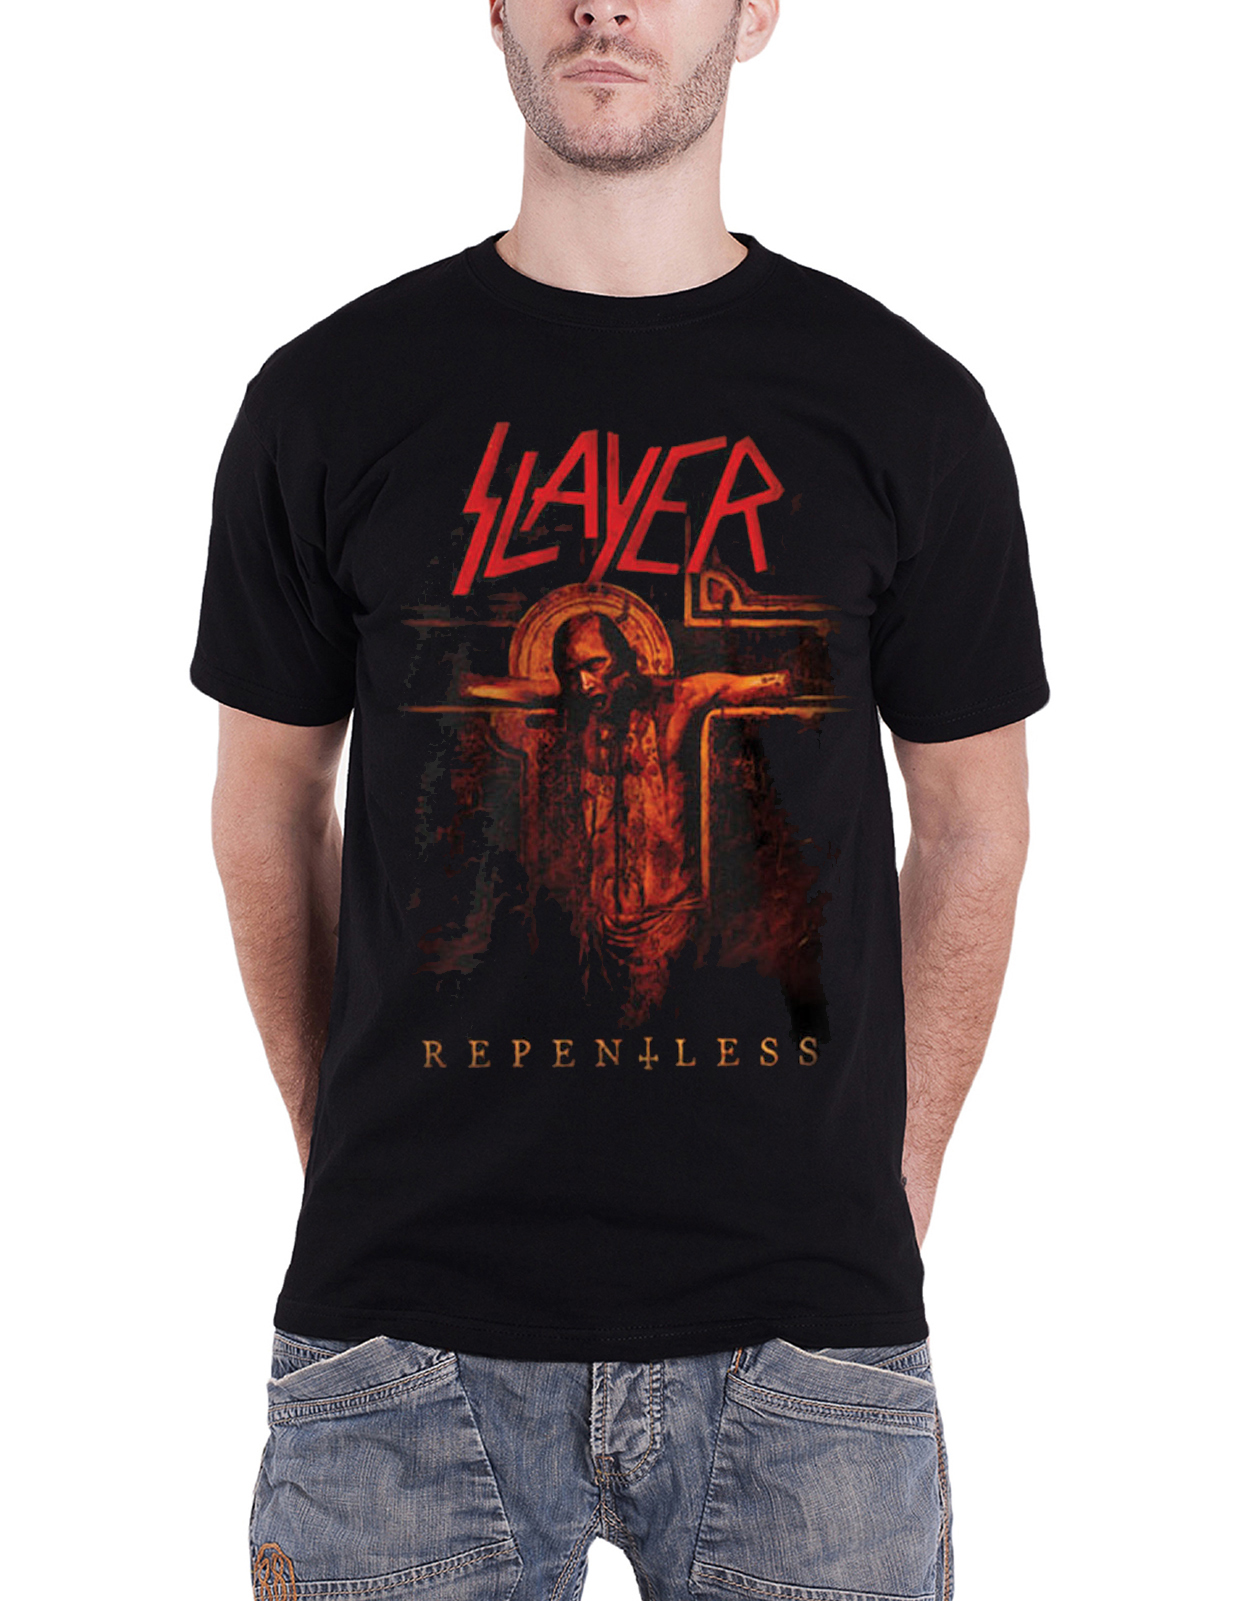 slayer t shirt official band logo reign in blood thrash. Black Bedroom Furniture Sets. Home Design Ideas